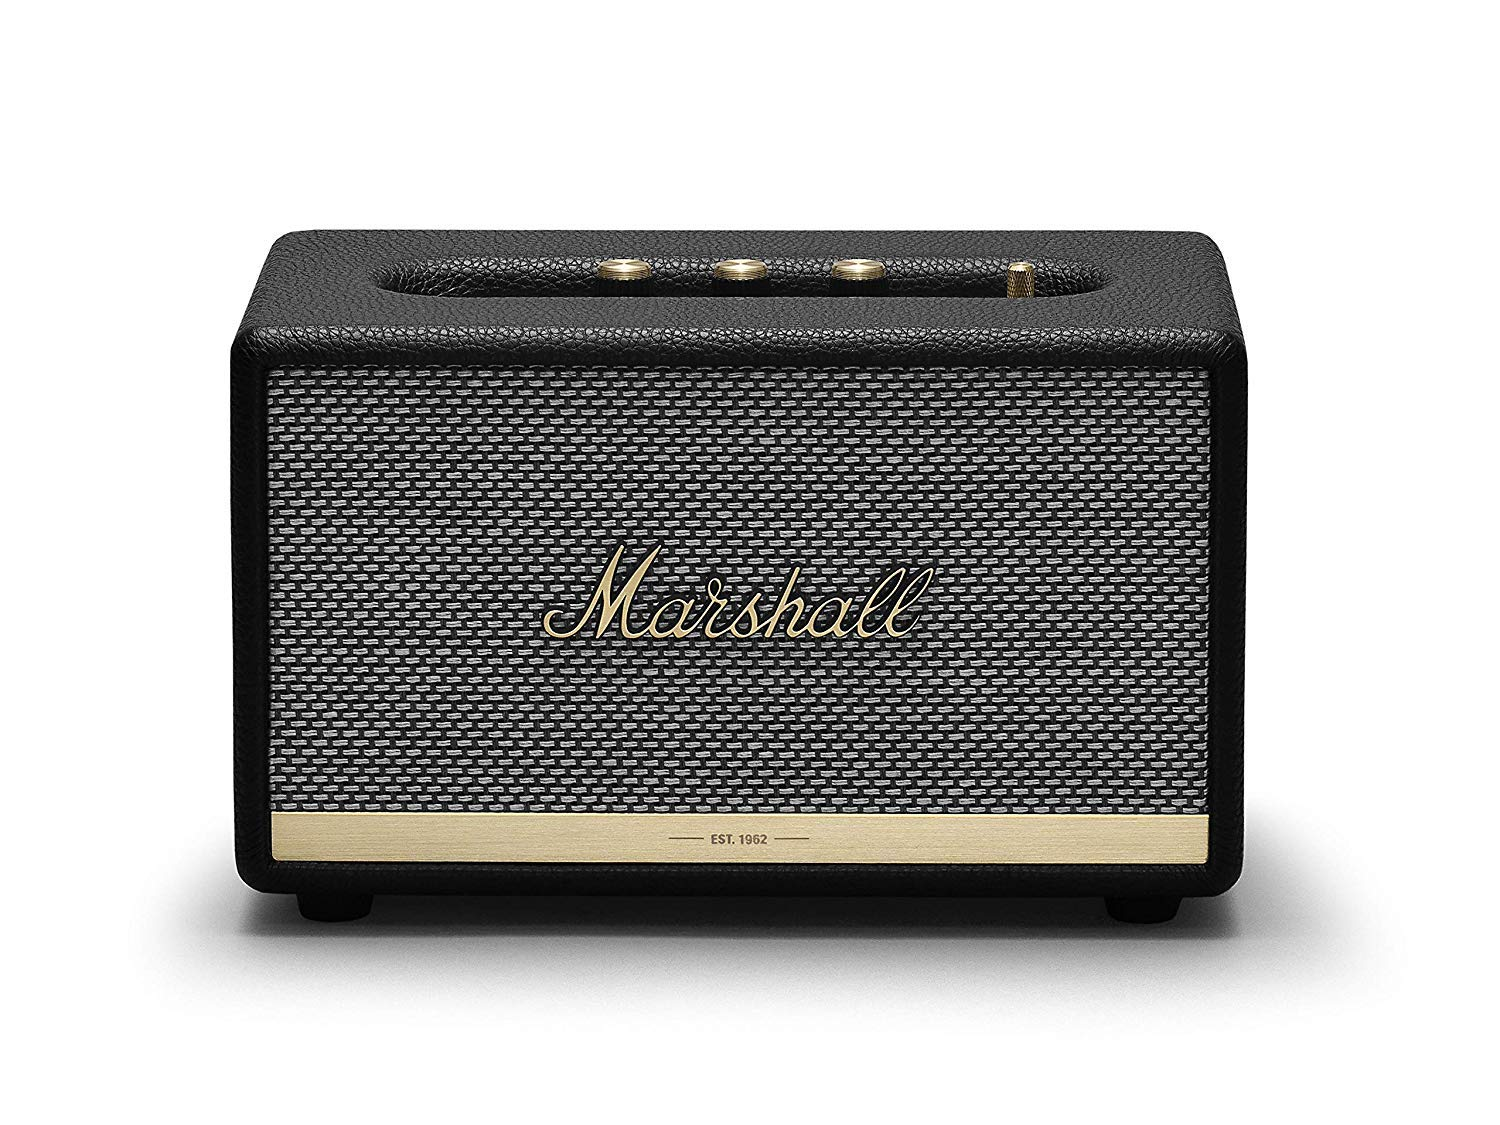 마샬 액톤 II 블루투스 스피커 블랙 [리퍼] Marshall Acton II Wireless Bluetooth Speaker - Black (Certified Refurbished)